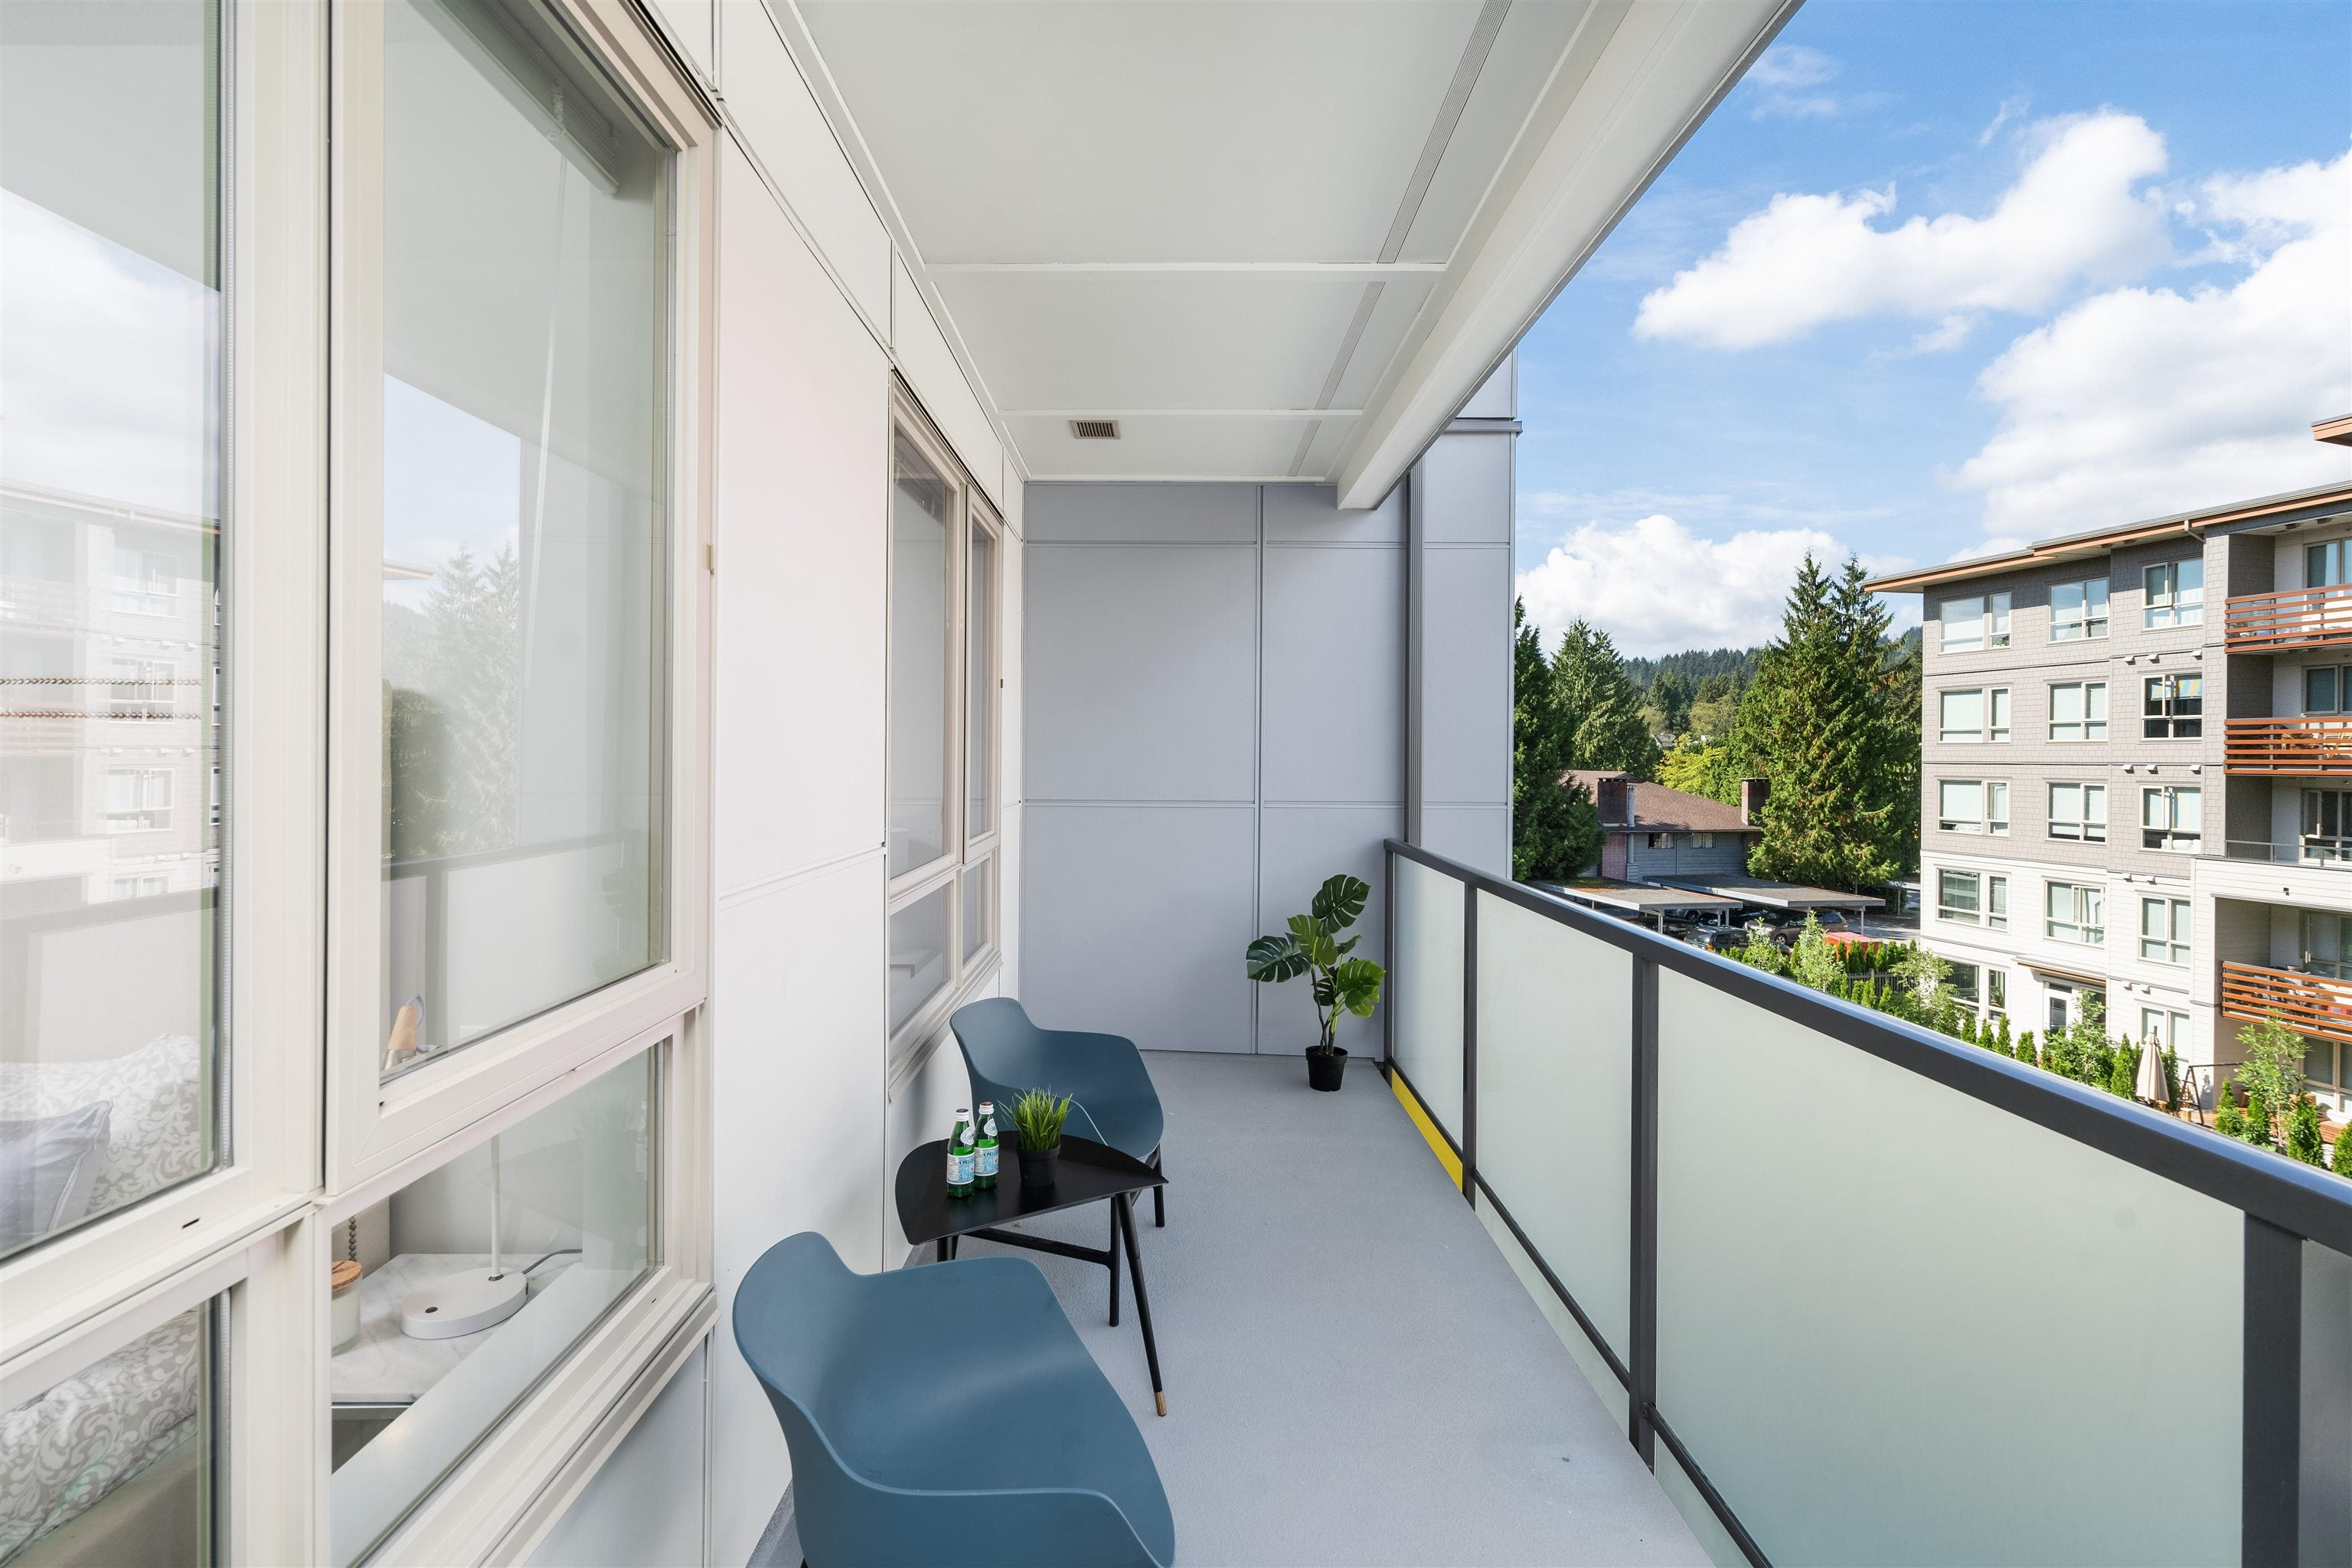 407 2651 LIBRARY LANE - Lynn Valley Apartment/Condo for sale, 2 Bedrooms (R2617872) - #20